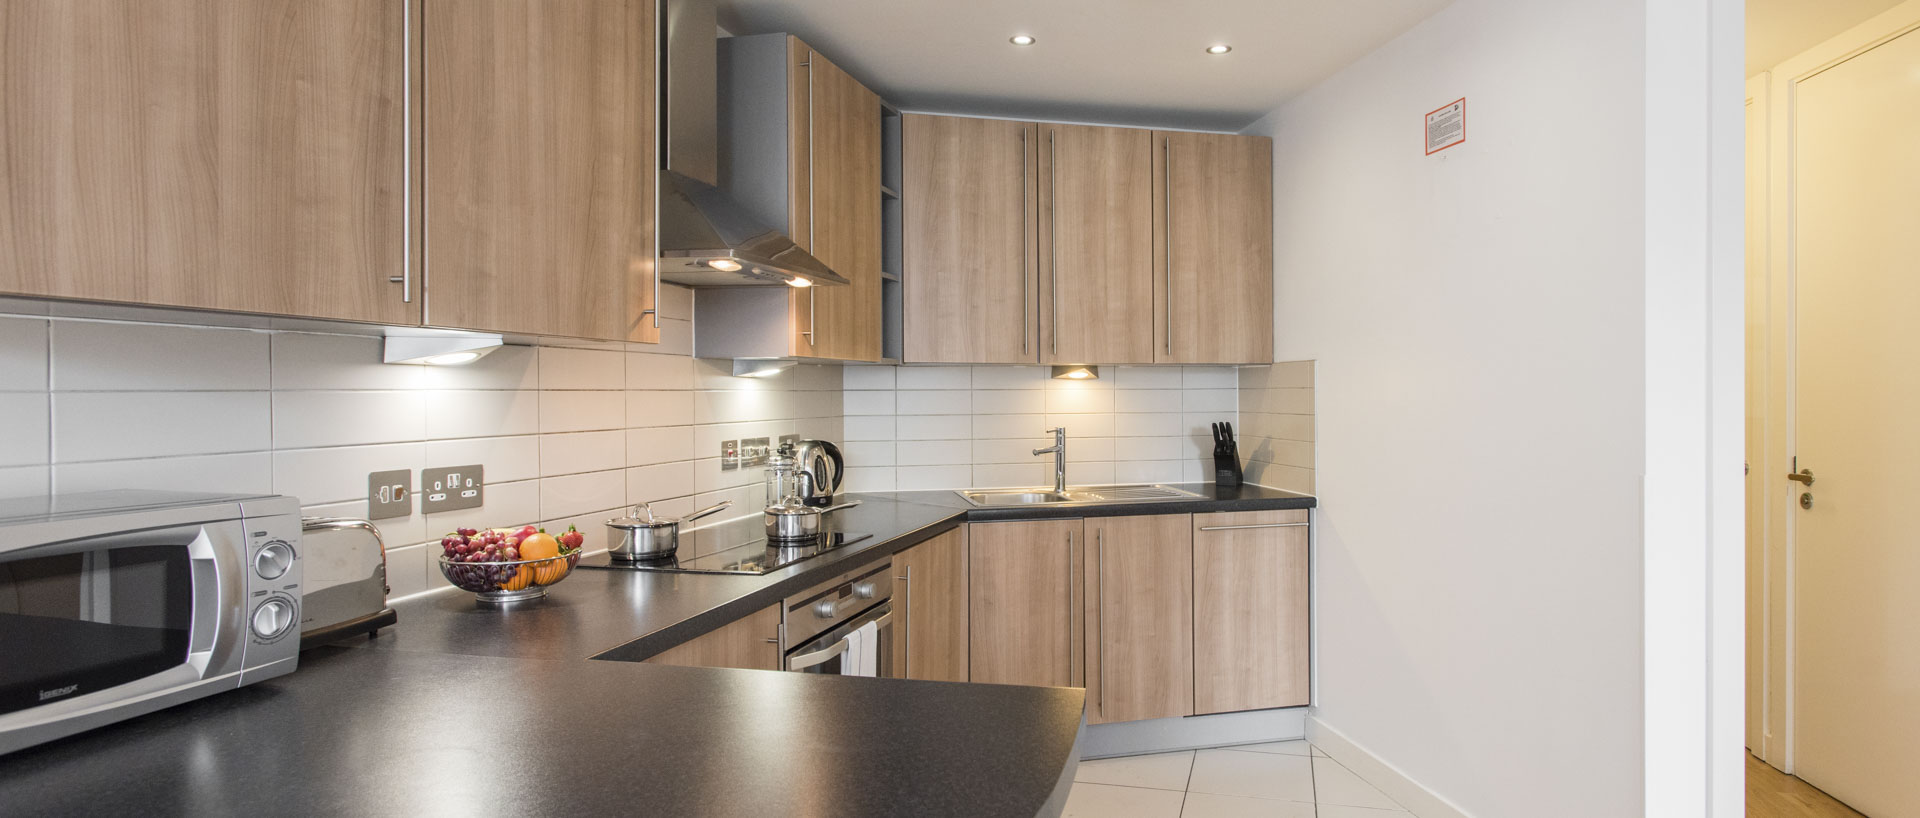 PREMIER SUITES Liverpool kitchen